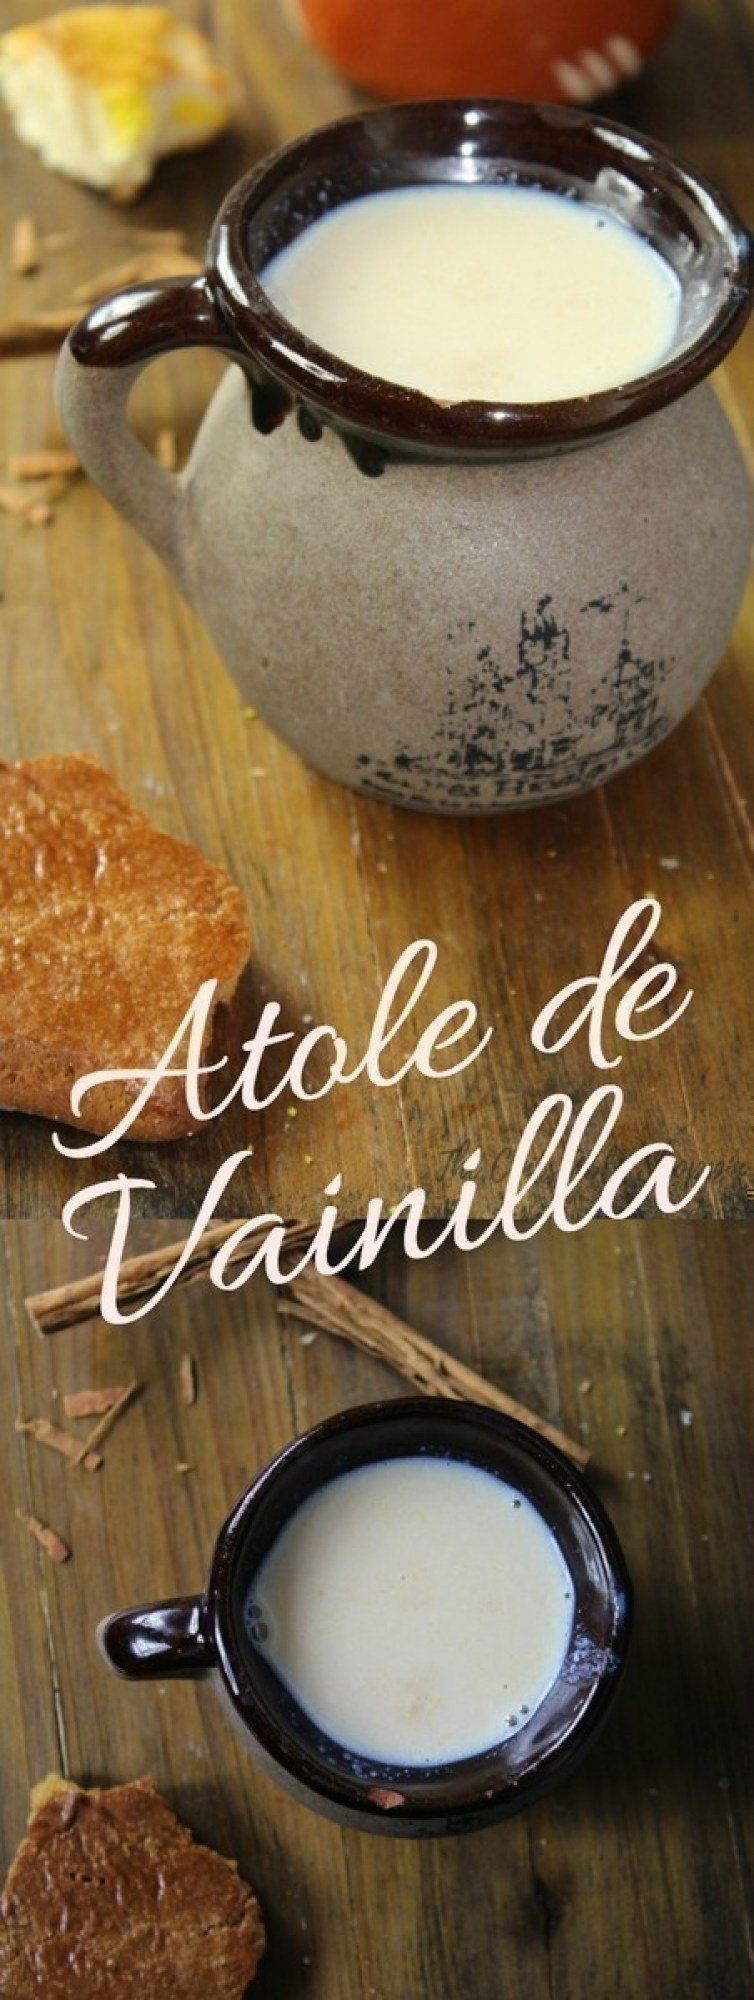 Atole de Vainilla is a traditional masa-based hot beverage, made easily with milk, vanilla beans, corn flour and piloncillo.